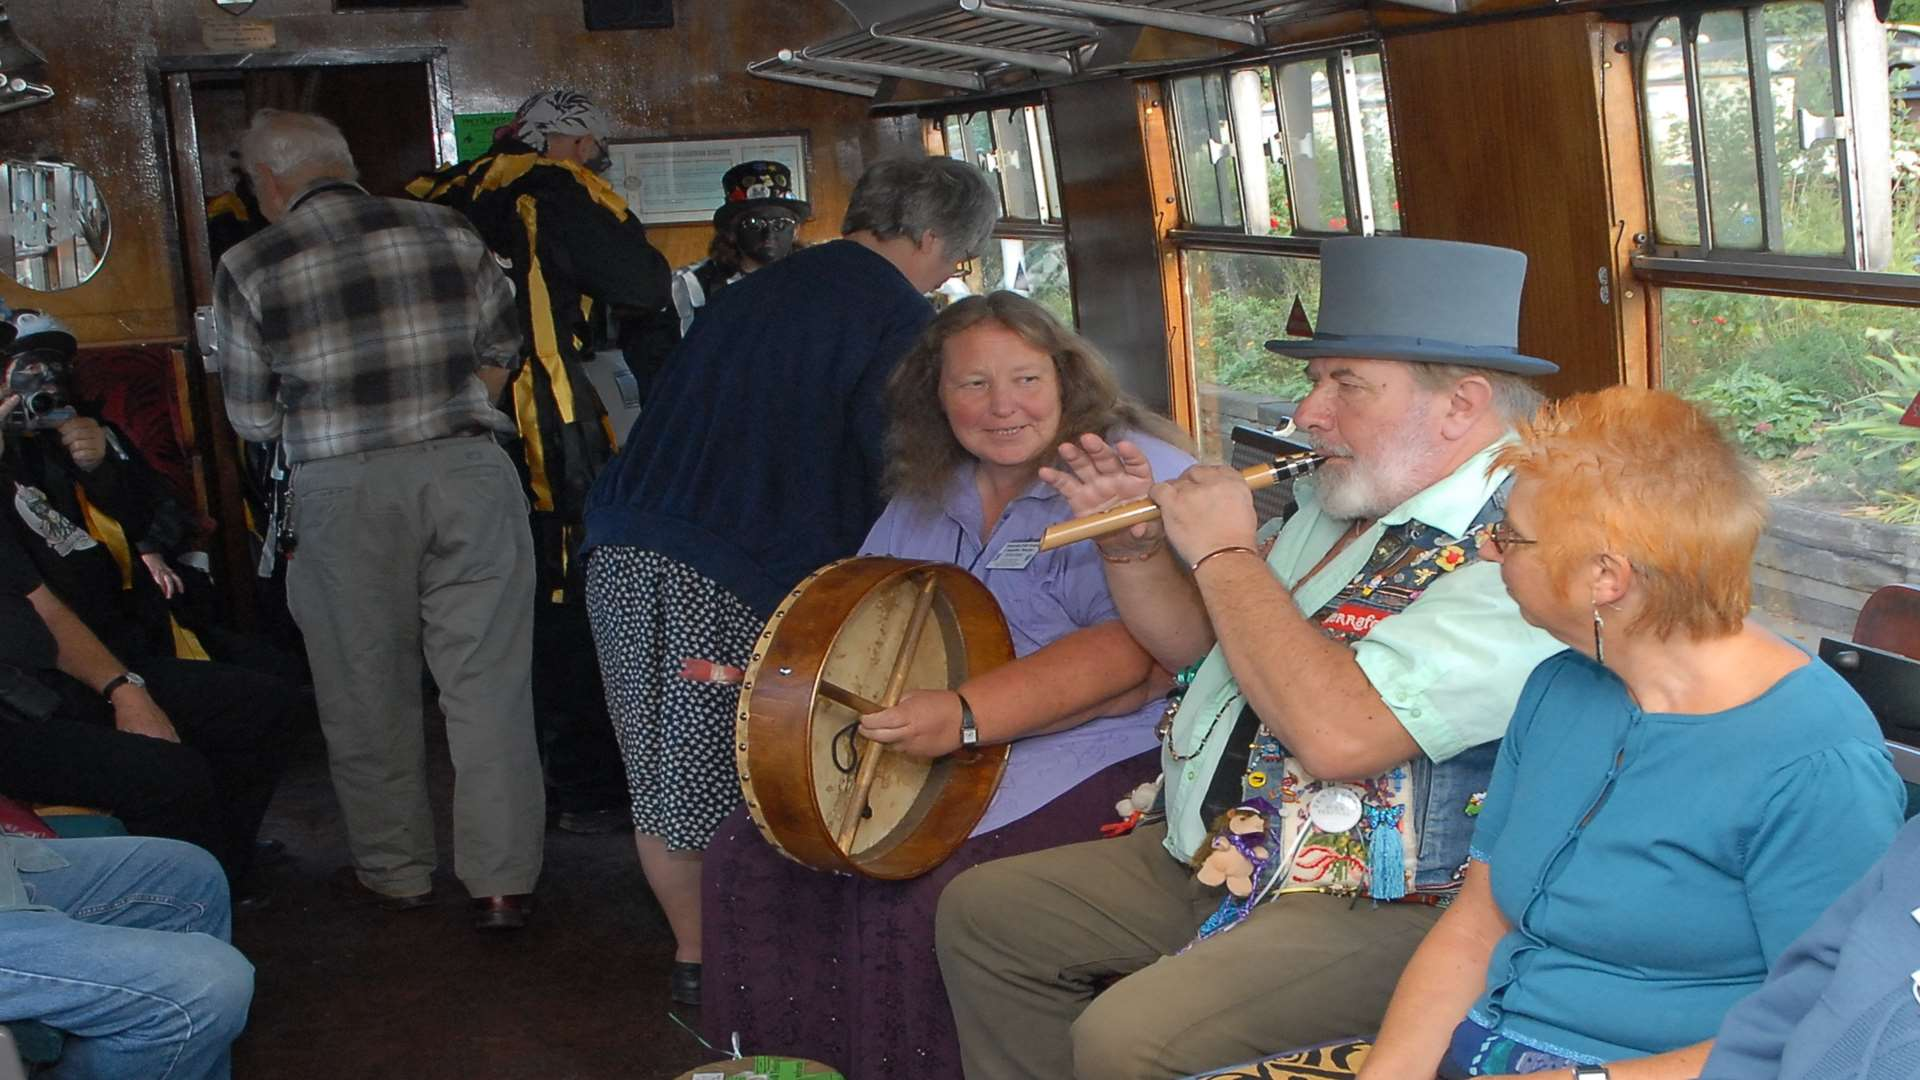 Kathy and Bob playing on the Folk Train in 2006. Picture by Barry Duffield